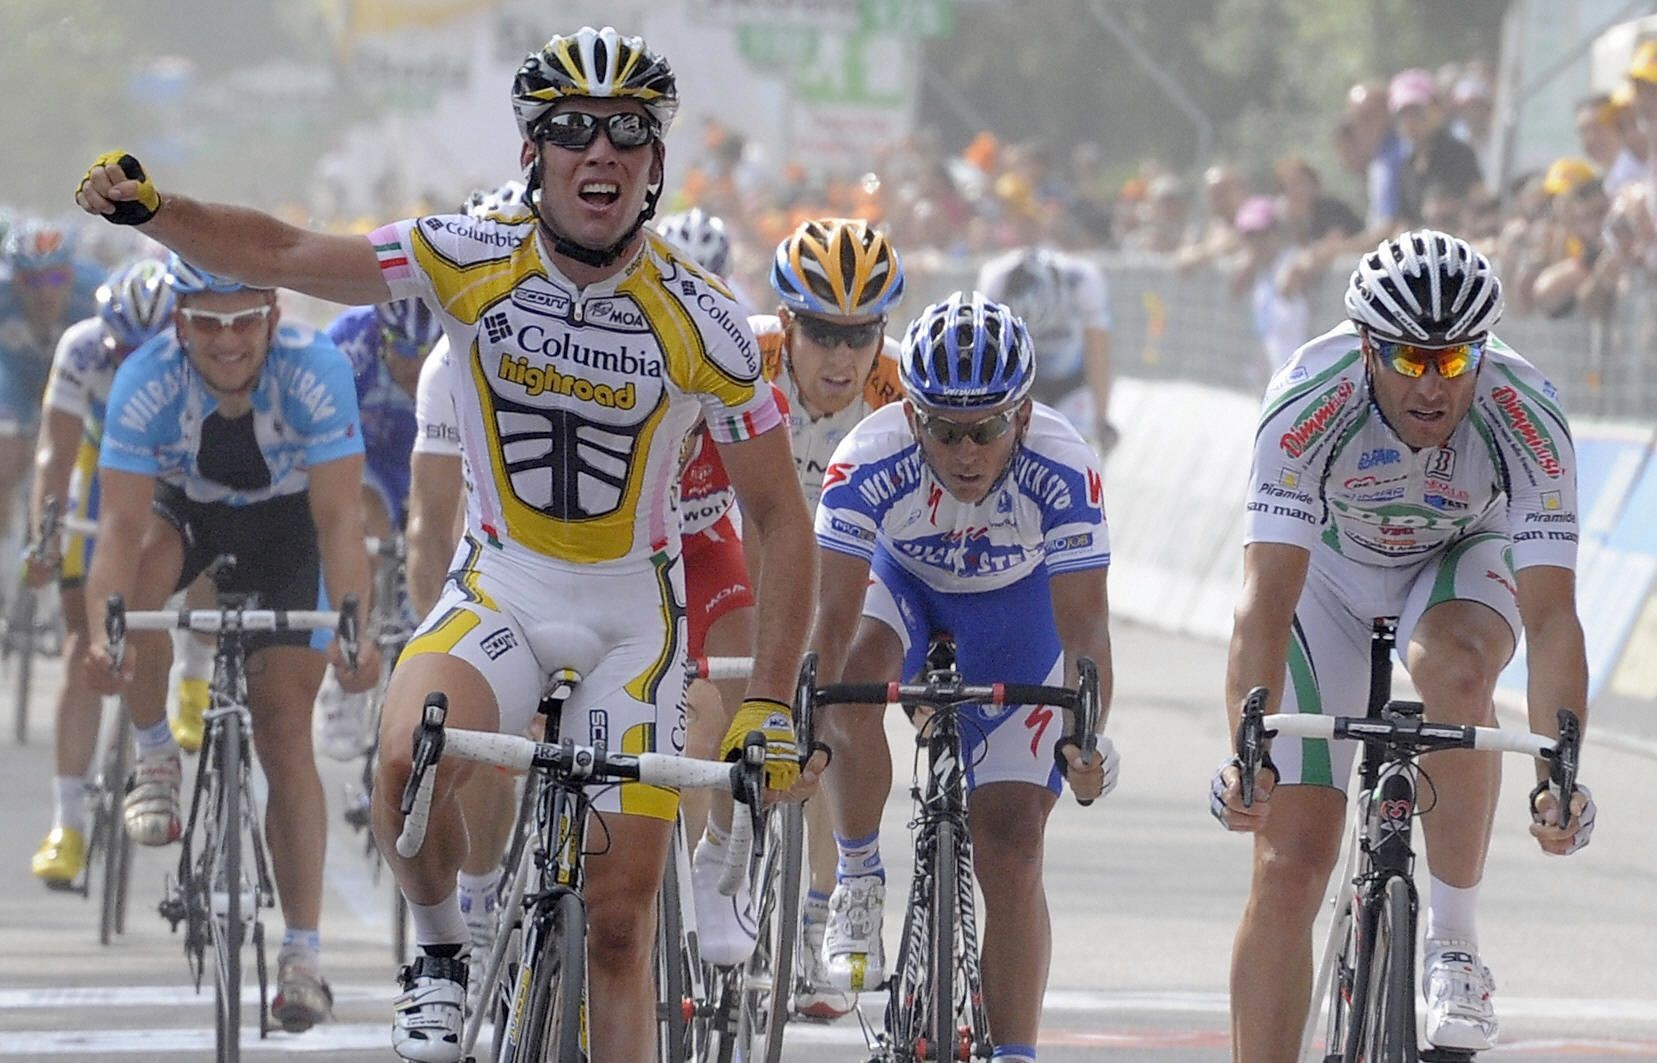 Cavendish won his third stage of the 2009 Giro d'Italia before leaving the race to prepare for the Tour.